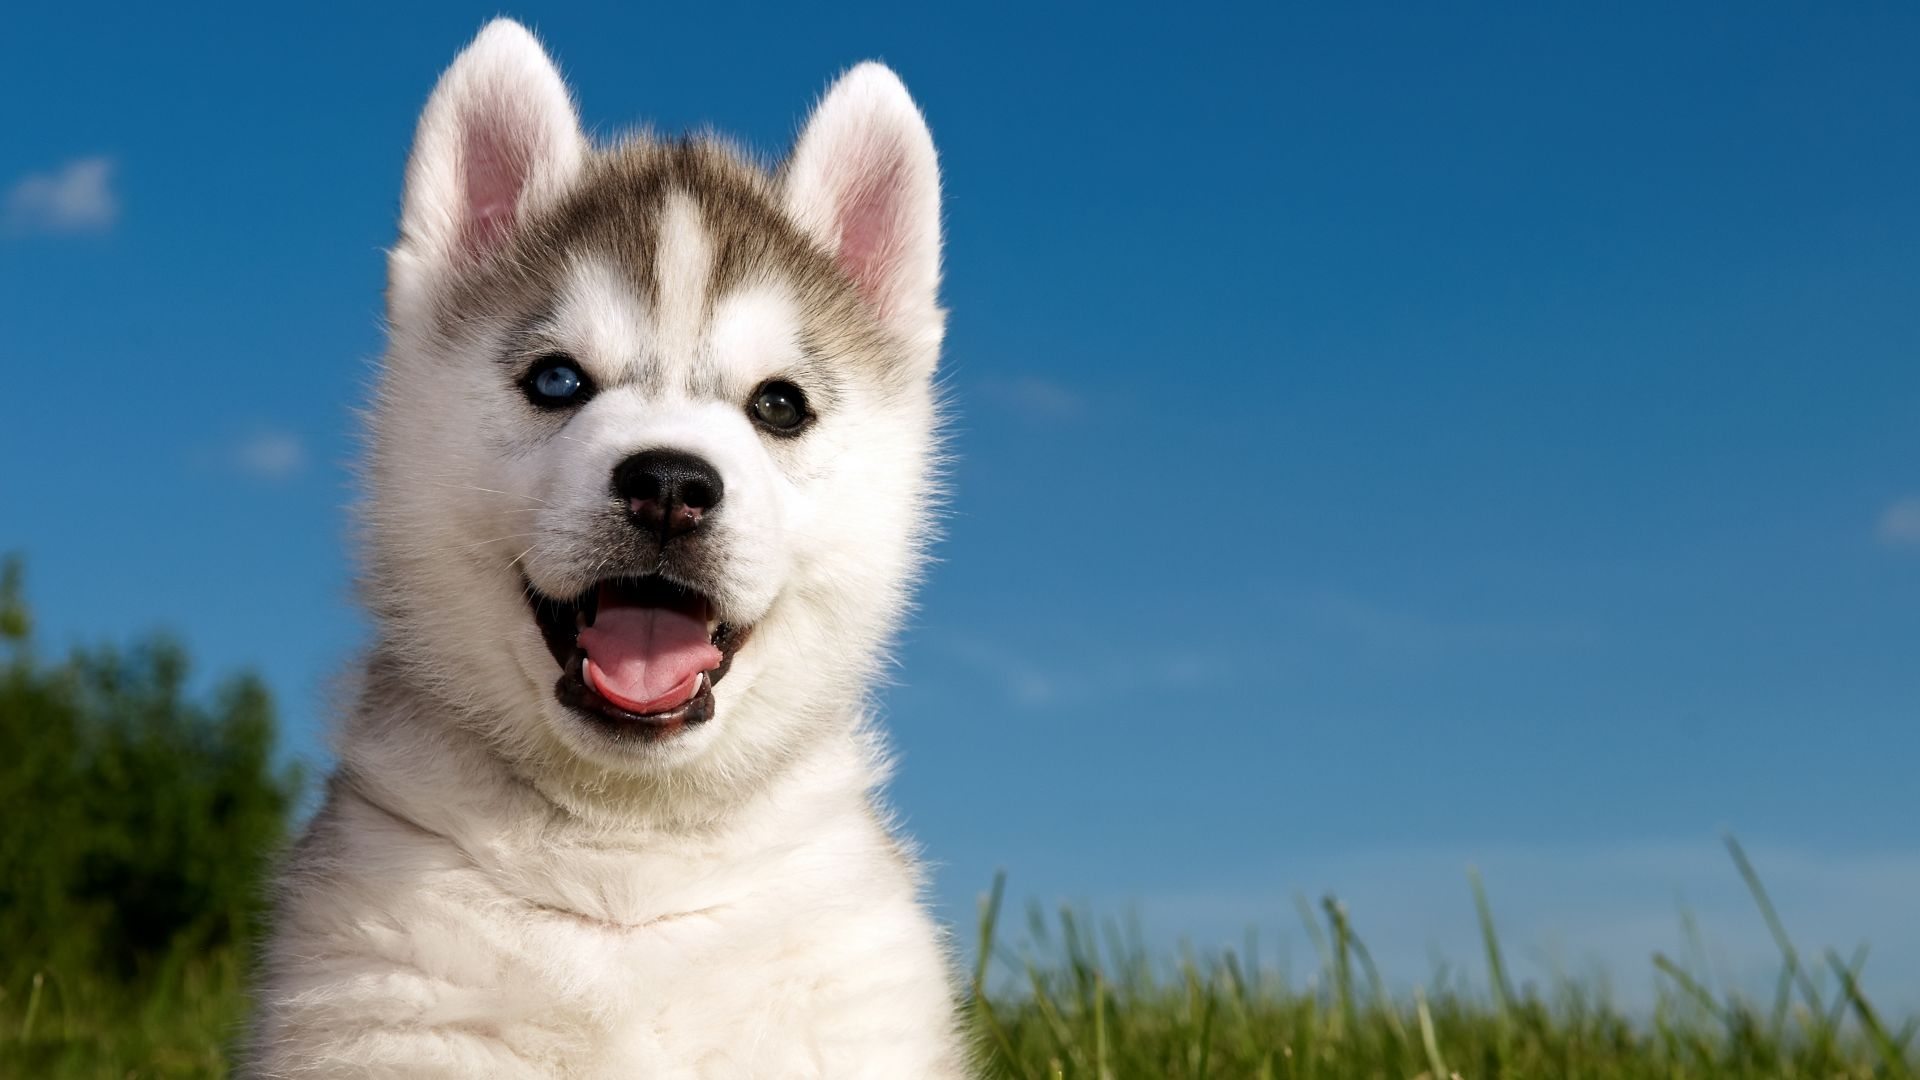 Husky, puppy, funny animals, cute animals, 4k (horizontal)